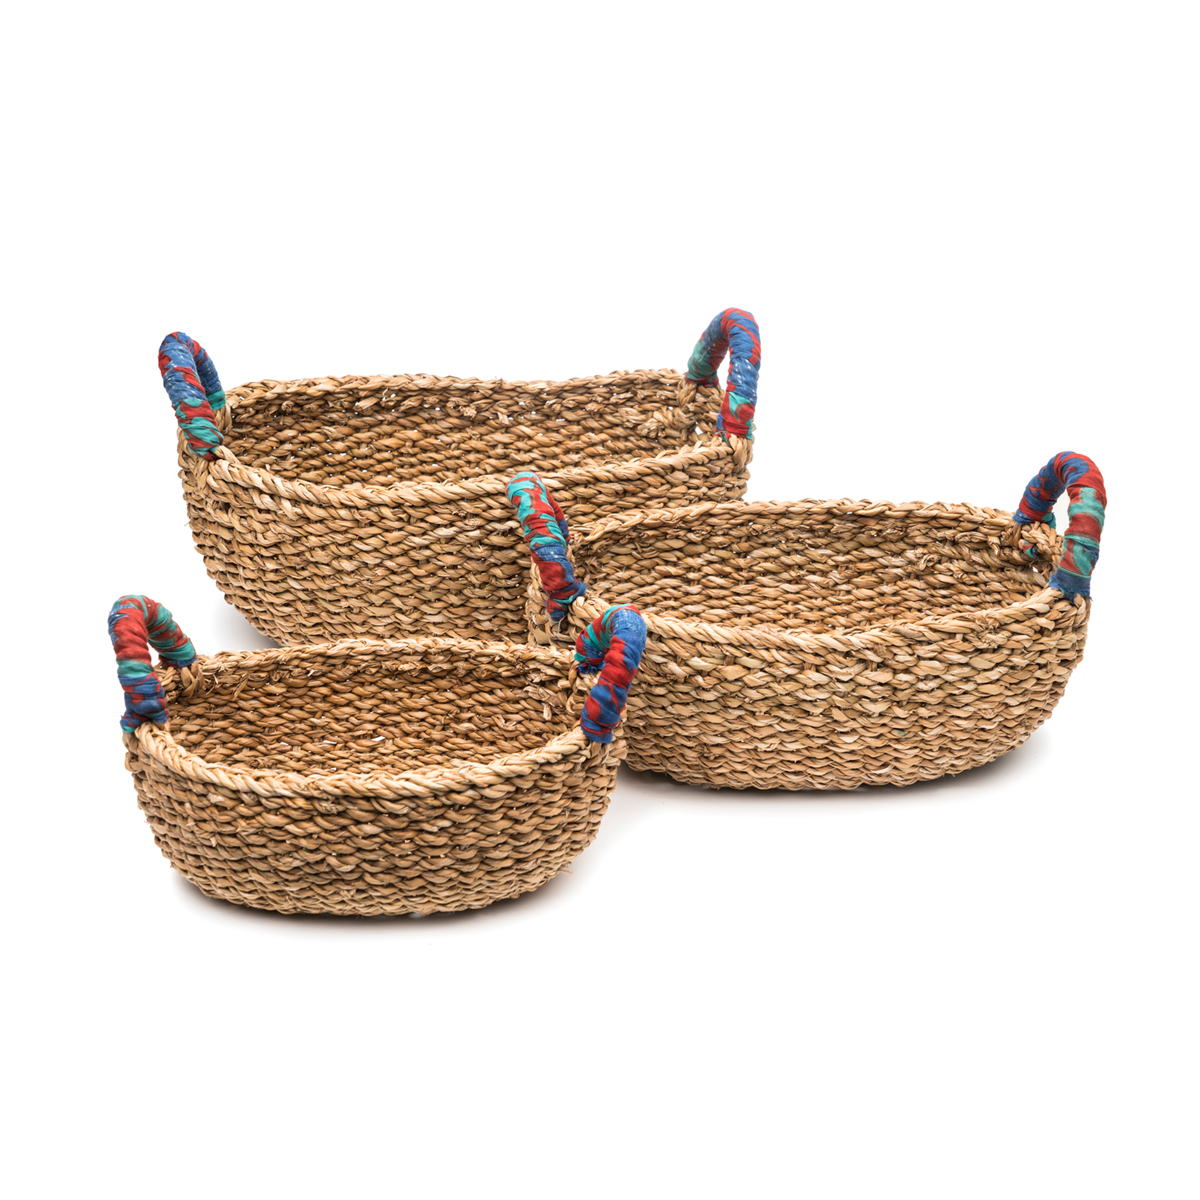 HBB214_Chindi_Handle_Baskets_Set_Table.jpg